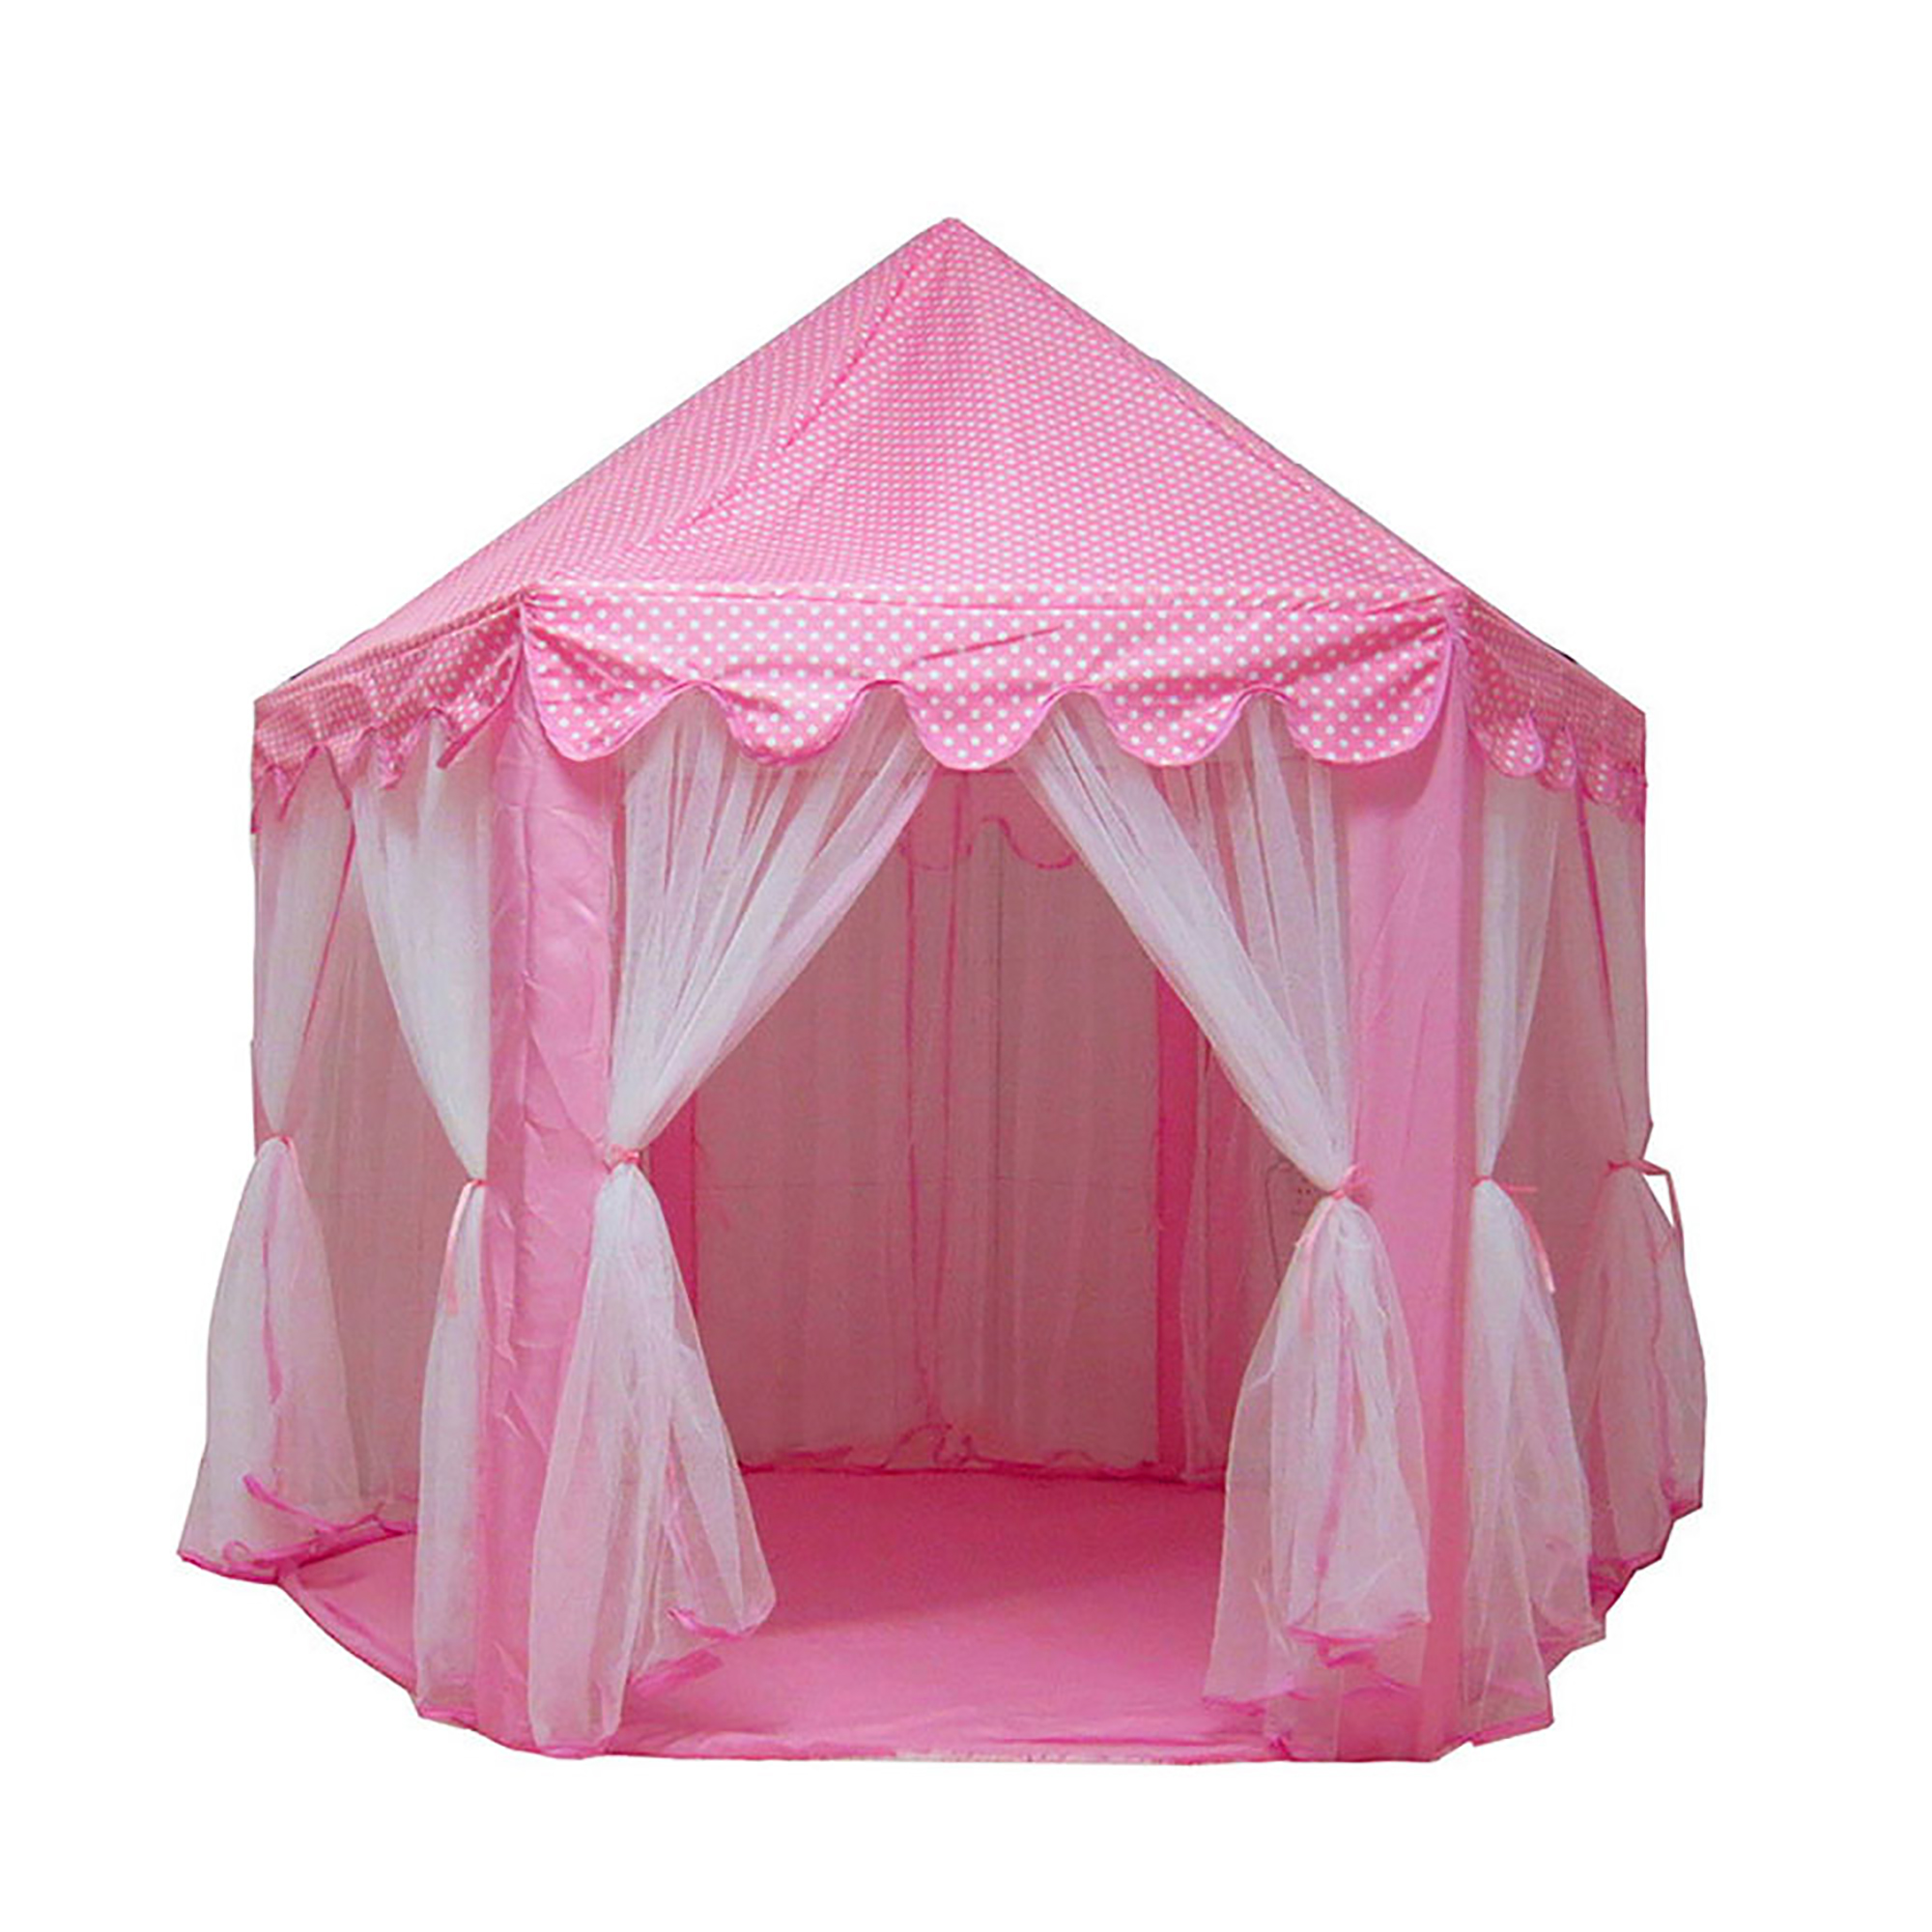 Kids Play Tent Tents For Girls Princess Castle Play House Large Outdoor Kids Play Tent For Girls Pink